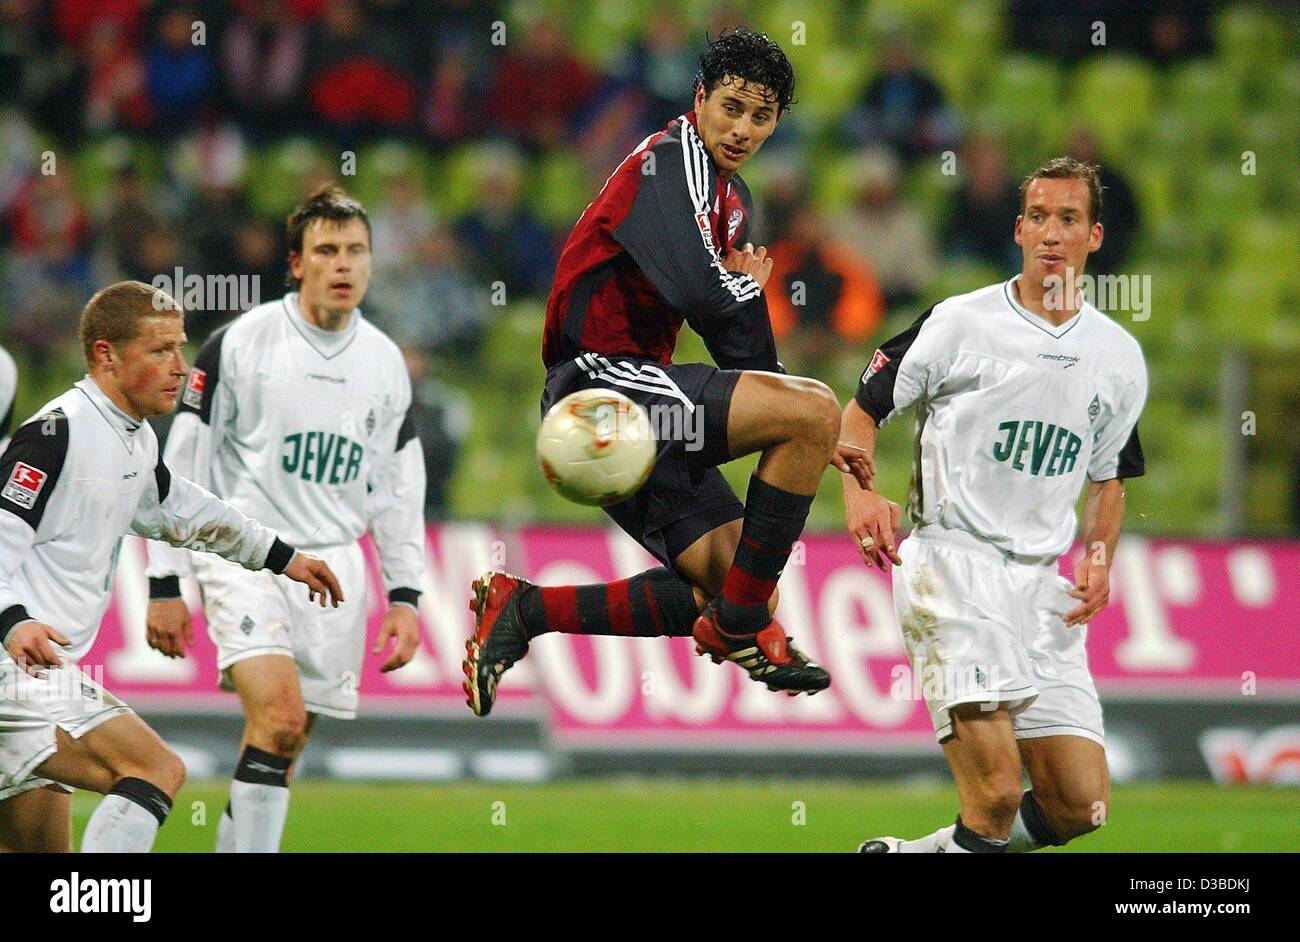 (dpa) - Bayern's Peruvian striker Claudio Pizarro (C) jumps and gets the ball before his opponents from Gladbach - Stock Image